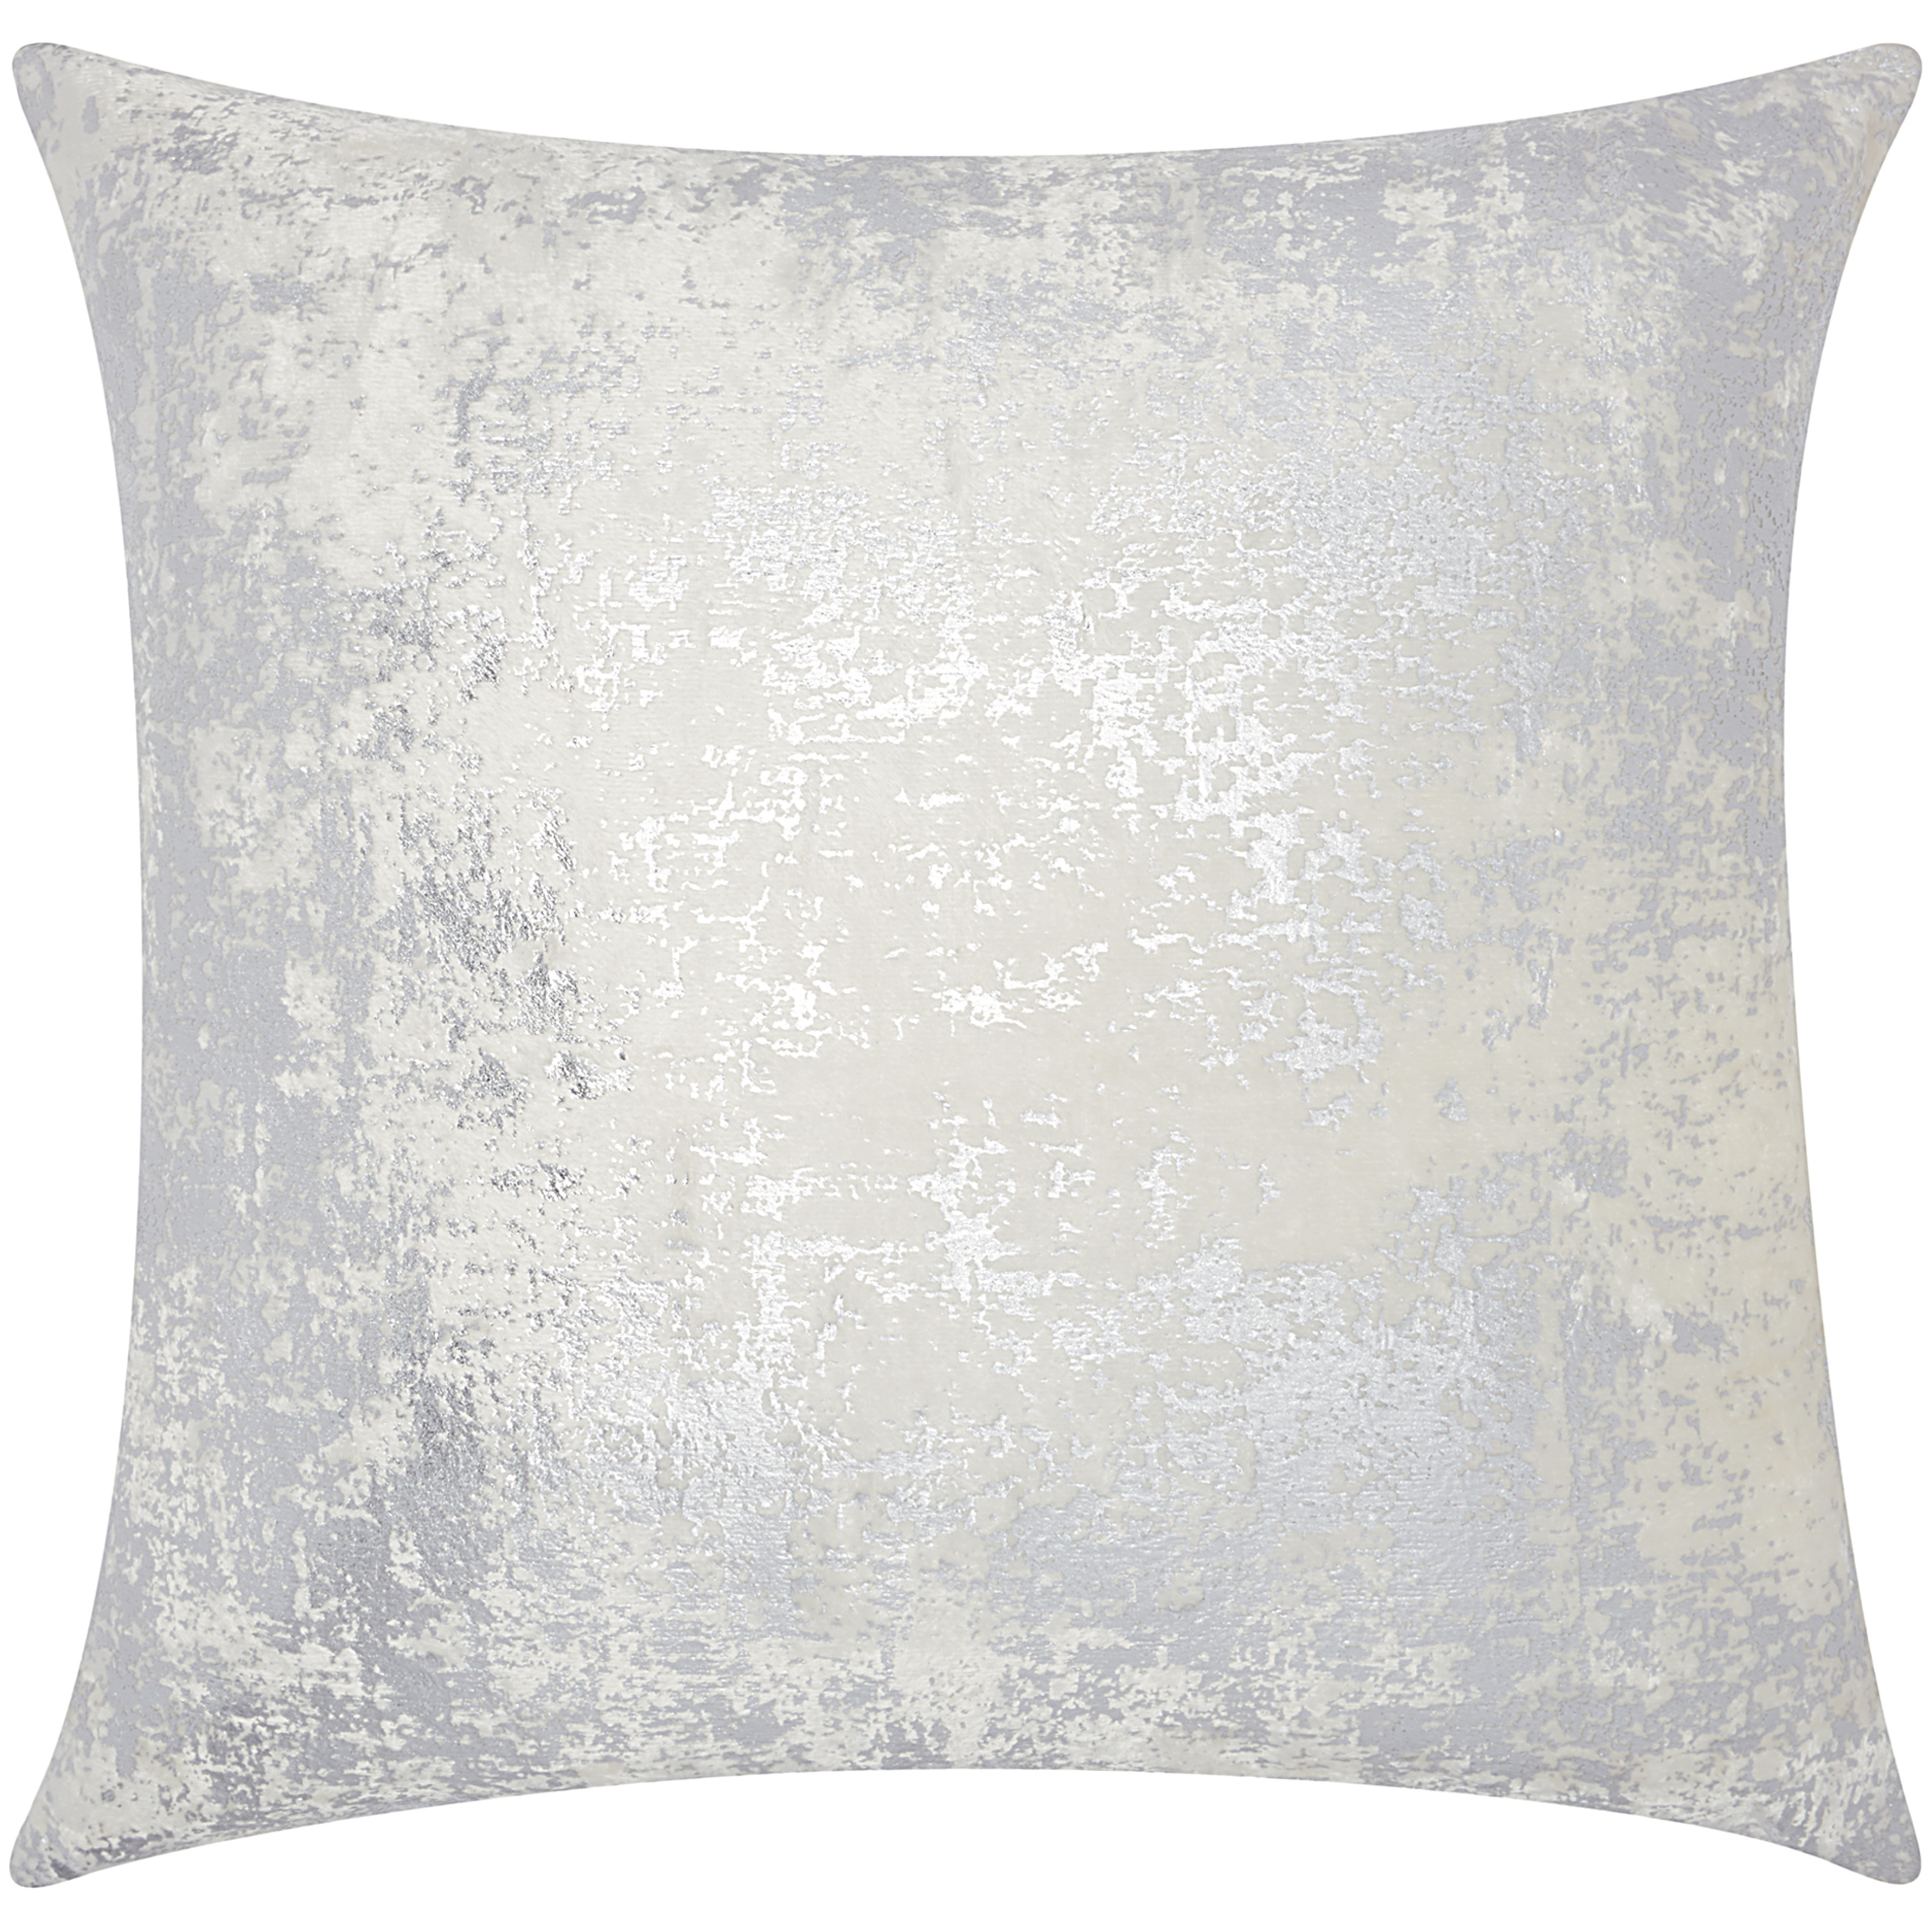 Shop Mina Victory Luminescence Distressed Metallic Silver Throw